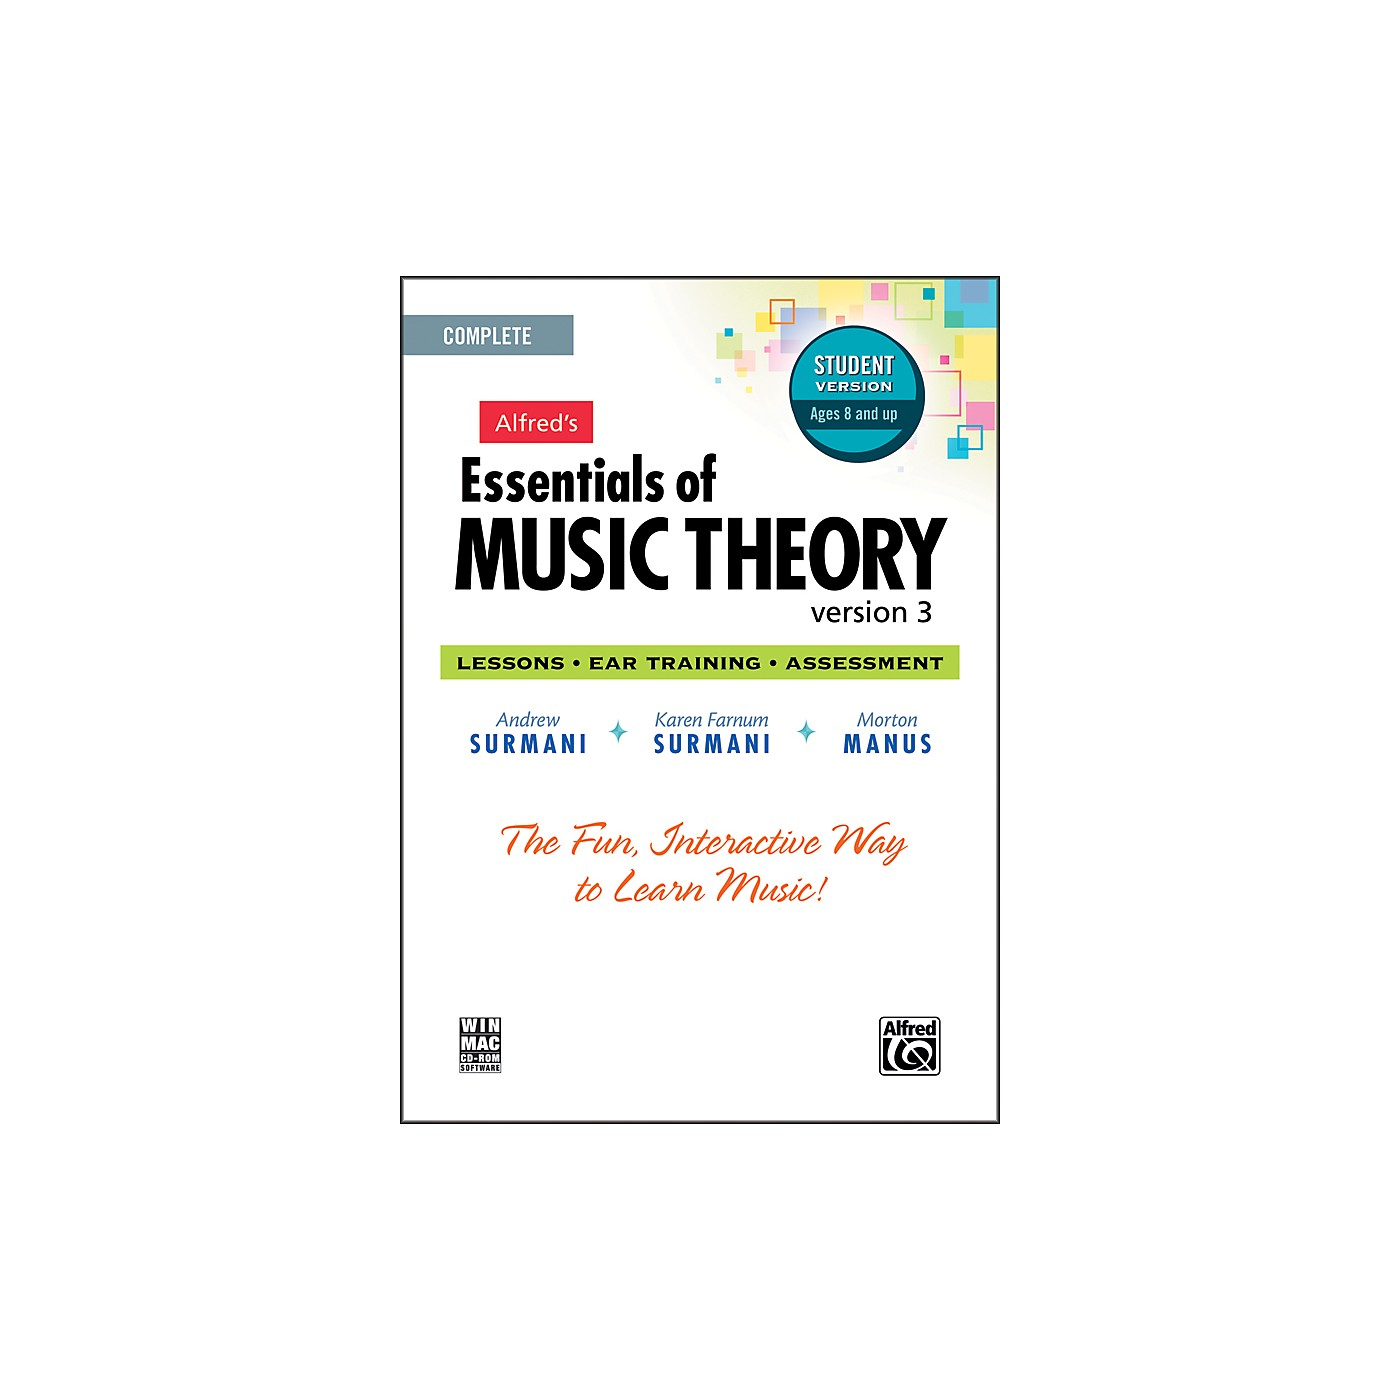 Alfred Essentials of Music Theory: Version 3 CD-ROM Student Version Complete thumbnail